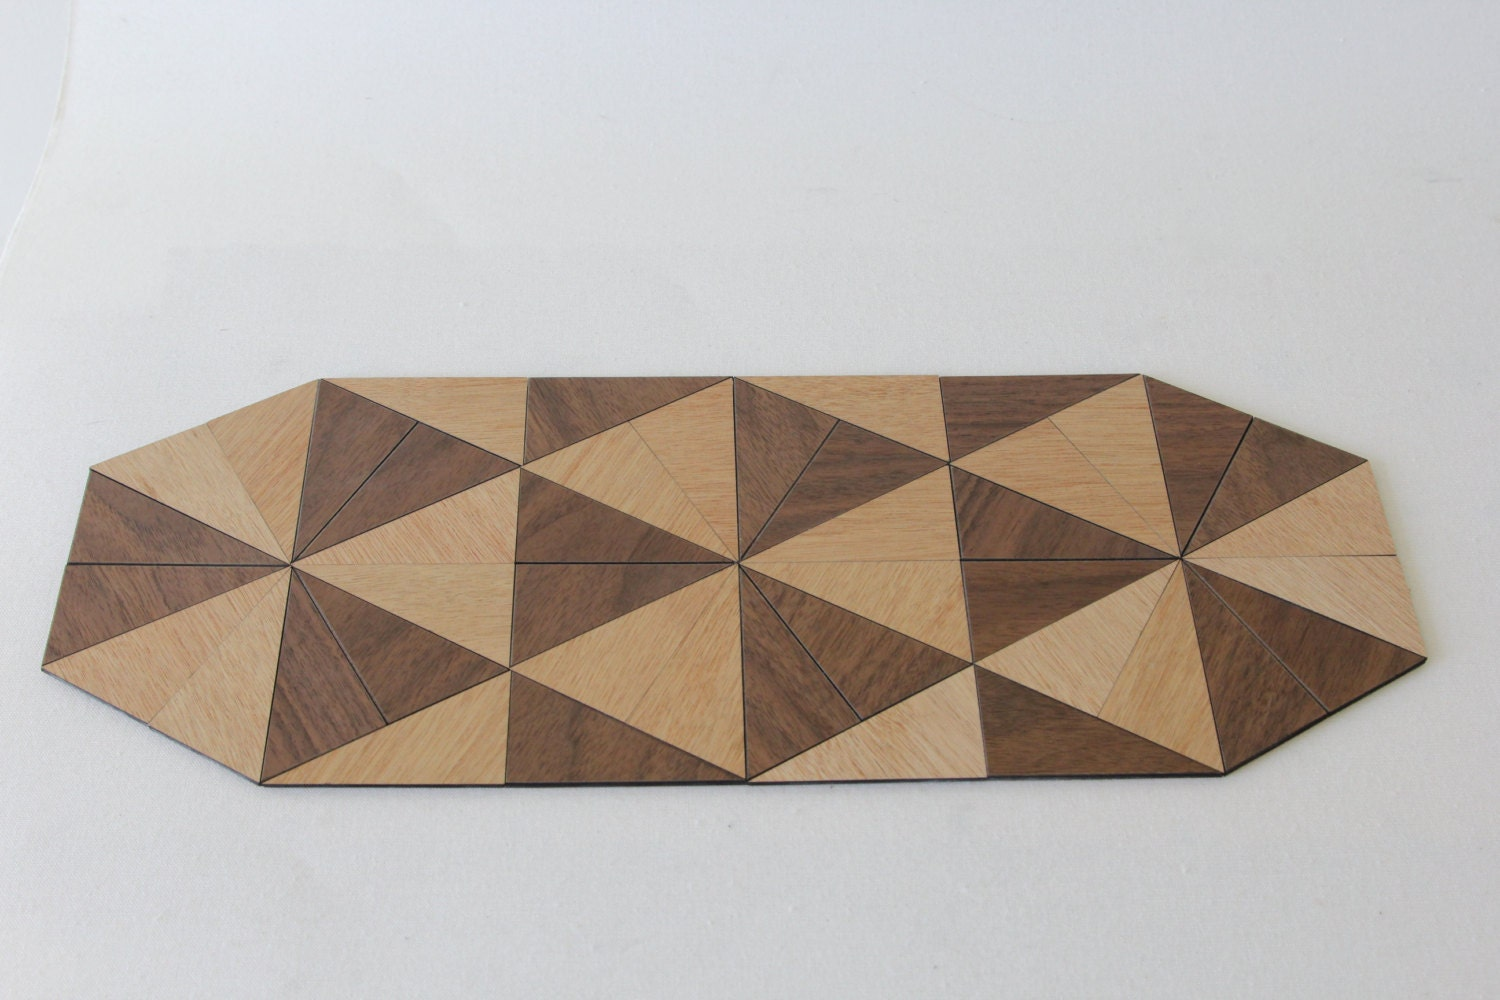 Triangle Design Table Mat Trivet Laser Cut Wood With Hemp